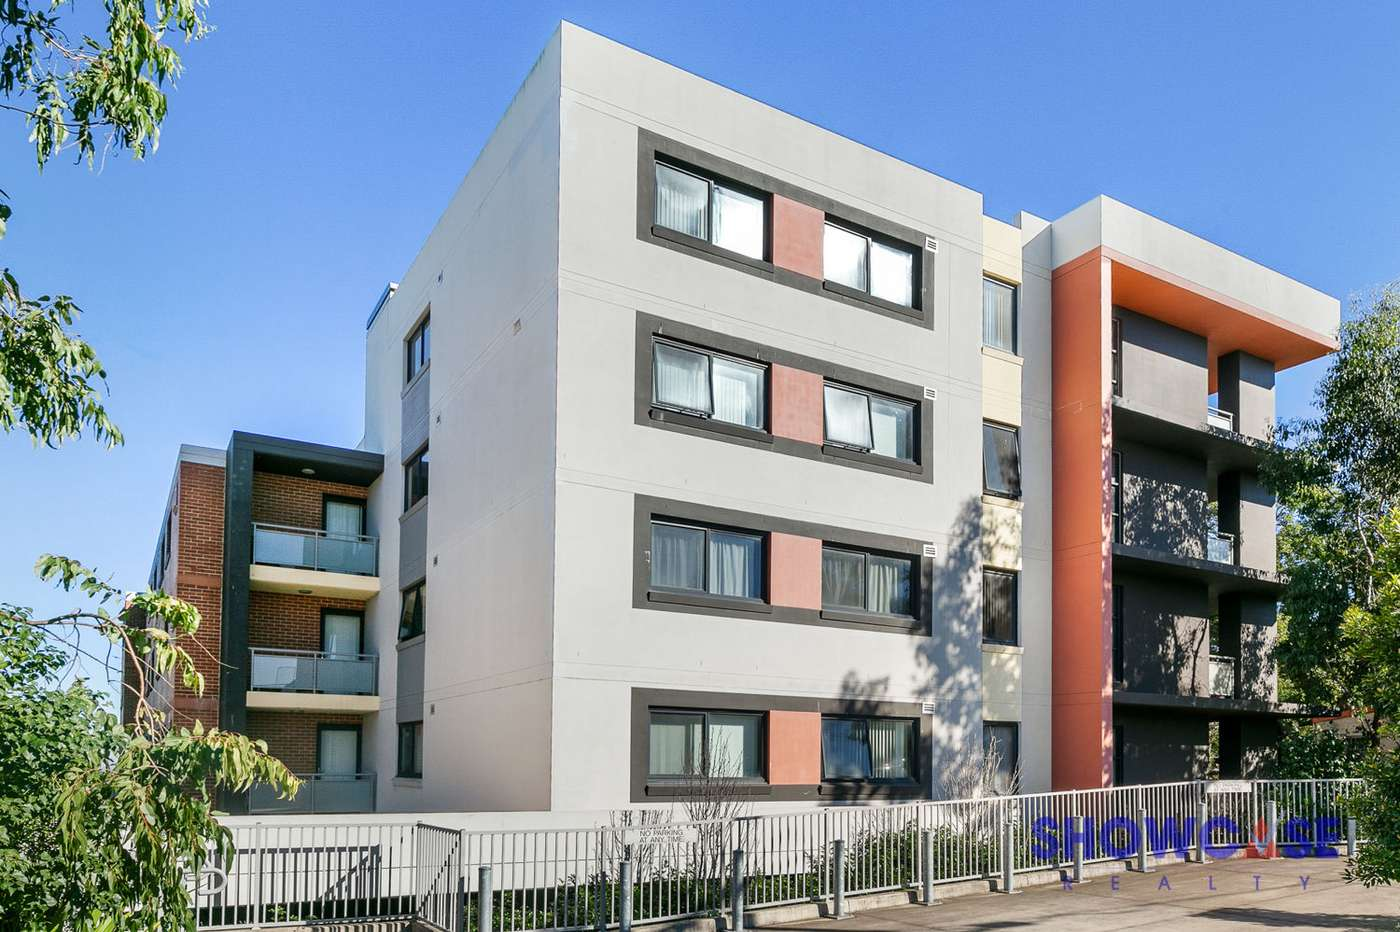 Main view of Homely unit listing, 88b/15 Young Rd, Carlingford, NSW 2118